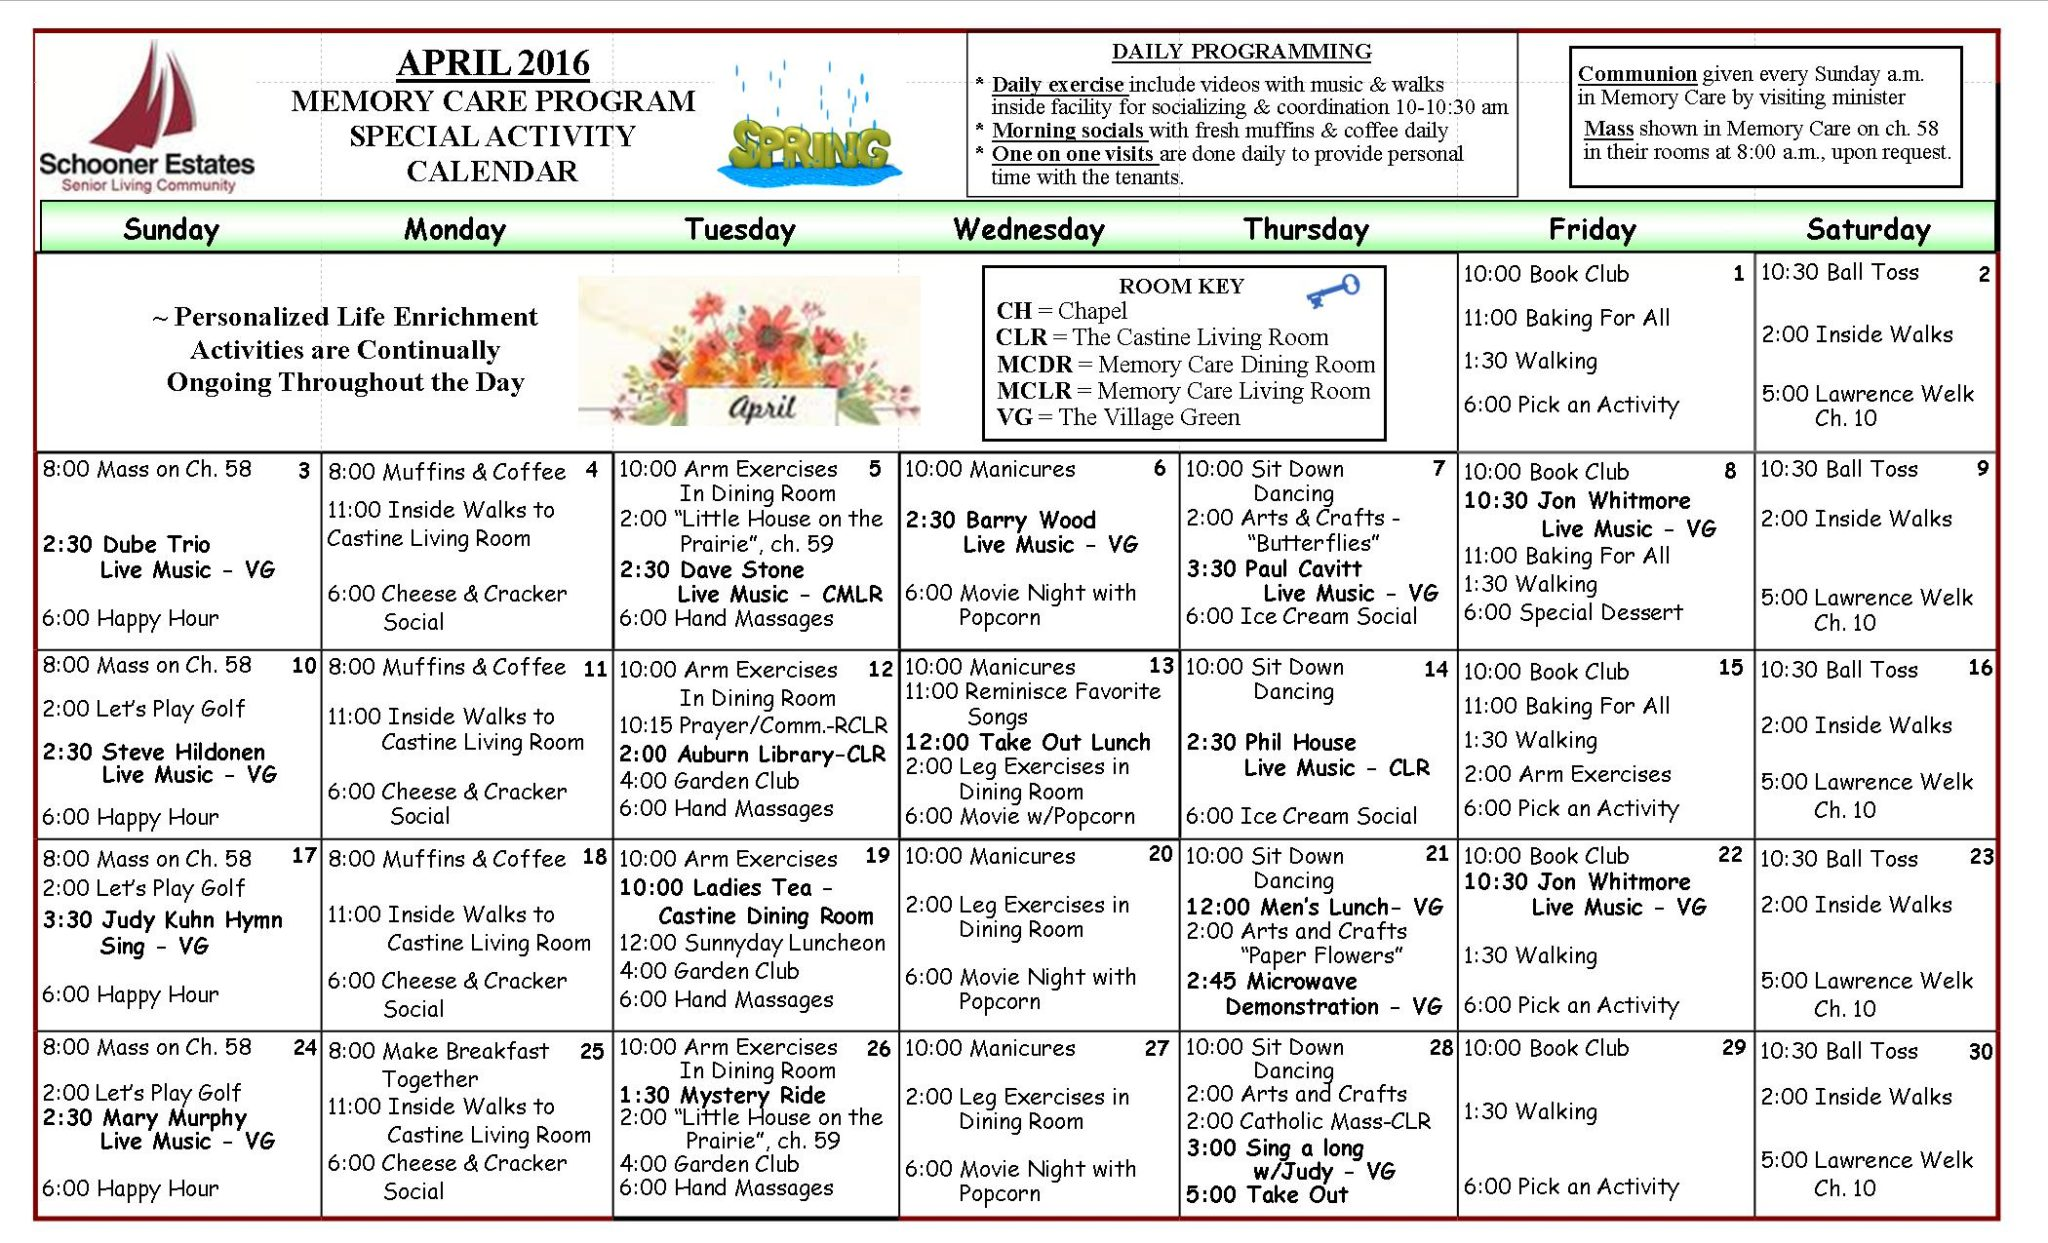 April 2016 Memory Care Activity Calendar